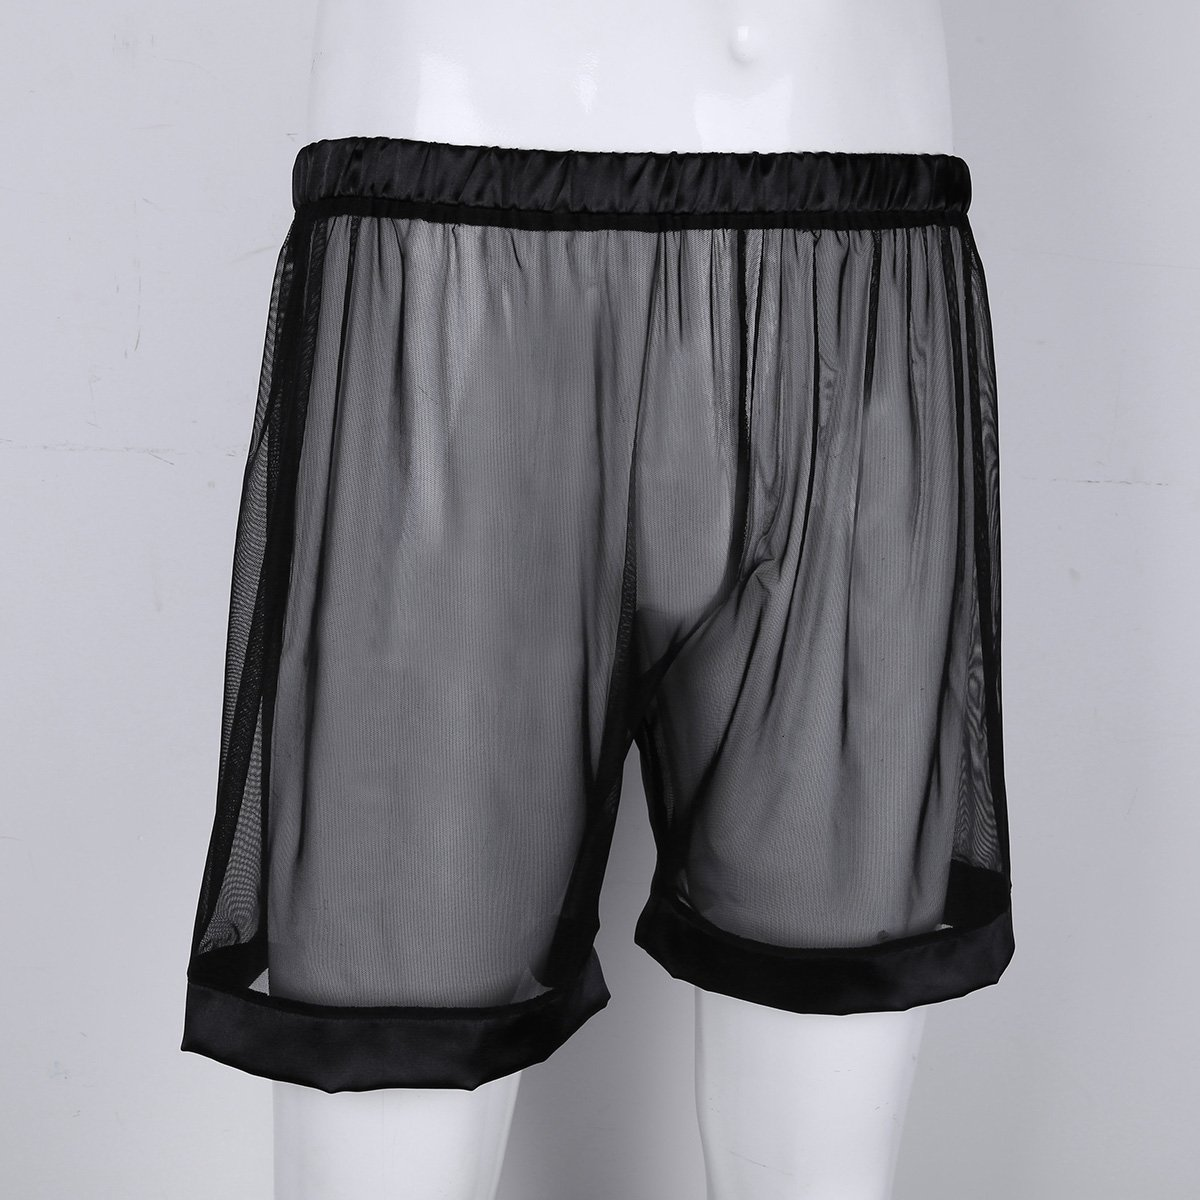 Alvivi Mens Mesh See-Through Loose Lounge Boxer Shorts Underwear